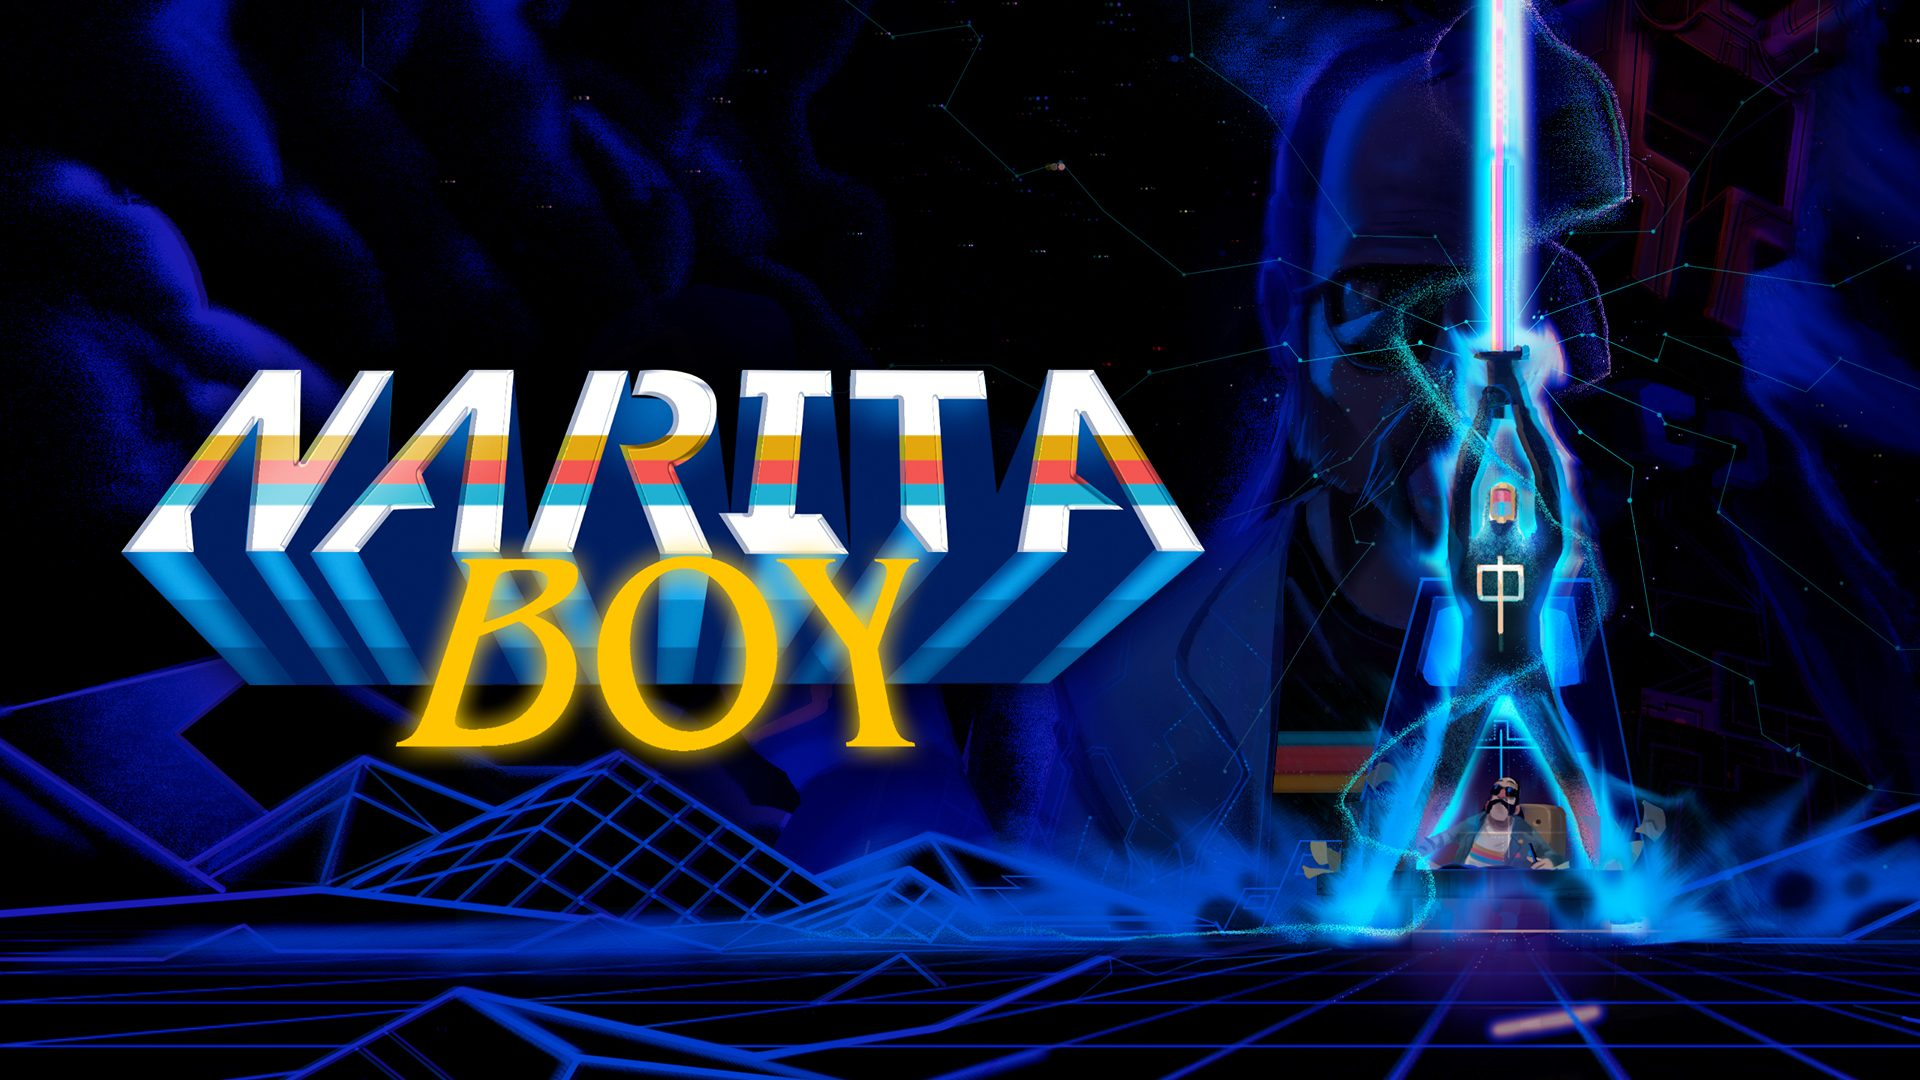 Narita Boy Review